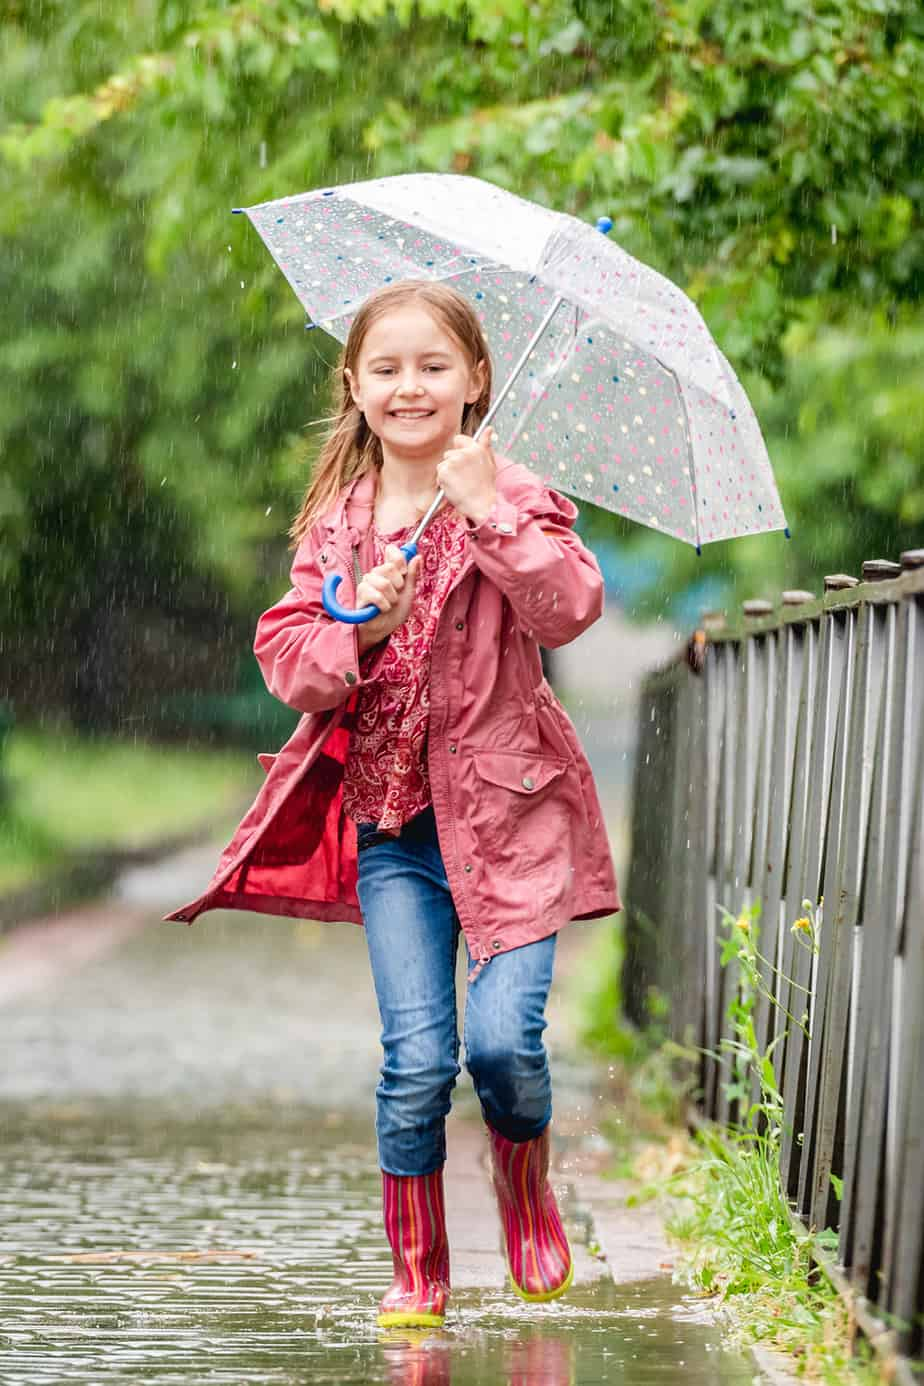 Girl with umbrella laughs jumping in spring puddles